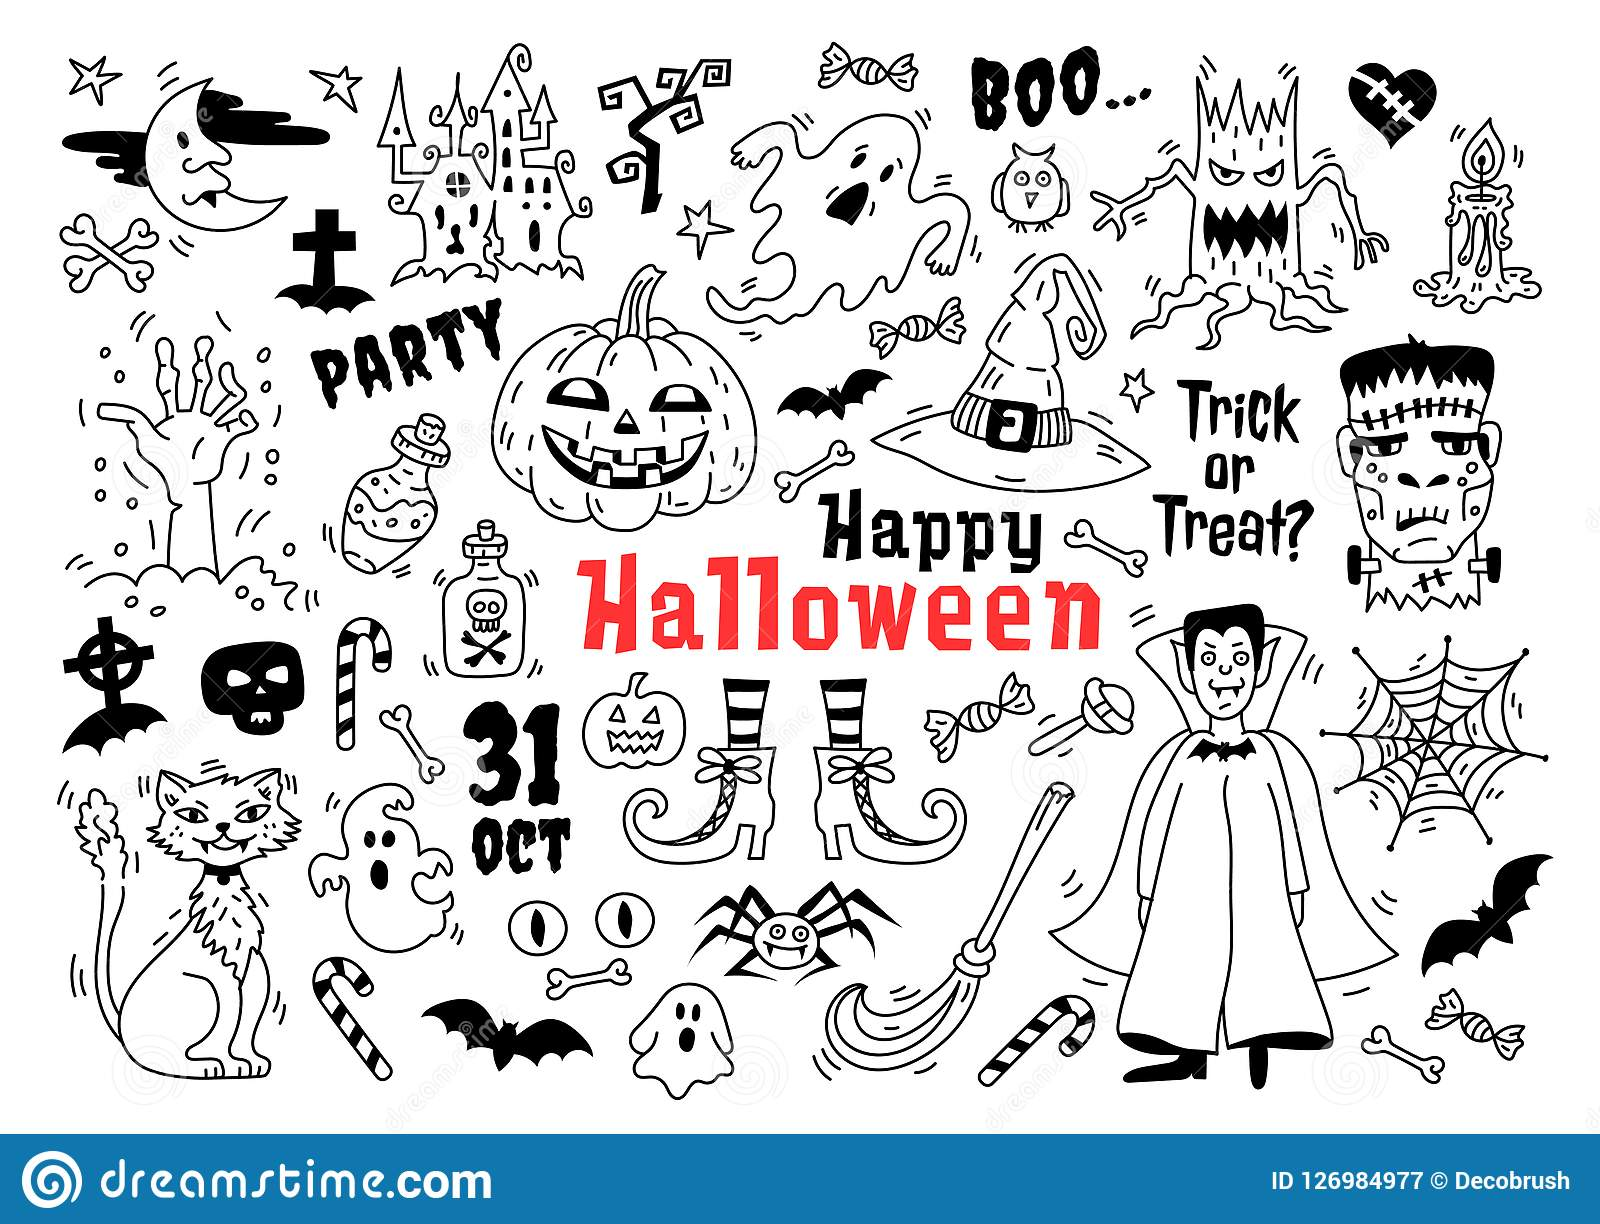 halloween doodle icon set. sketch of icons for decorating halloween